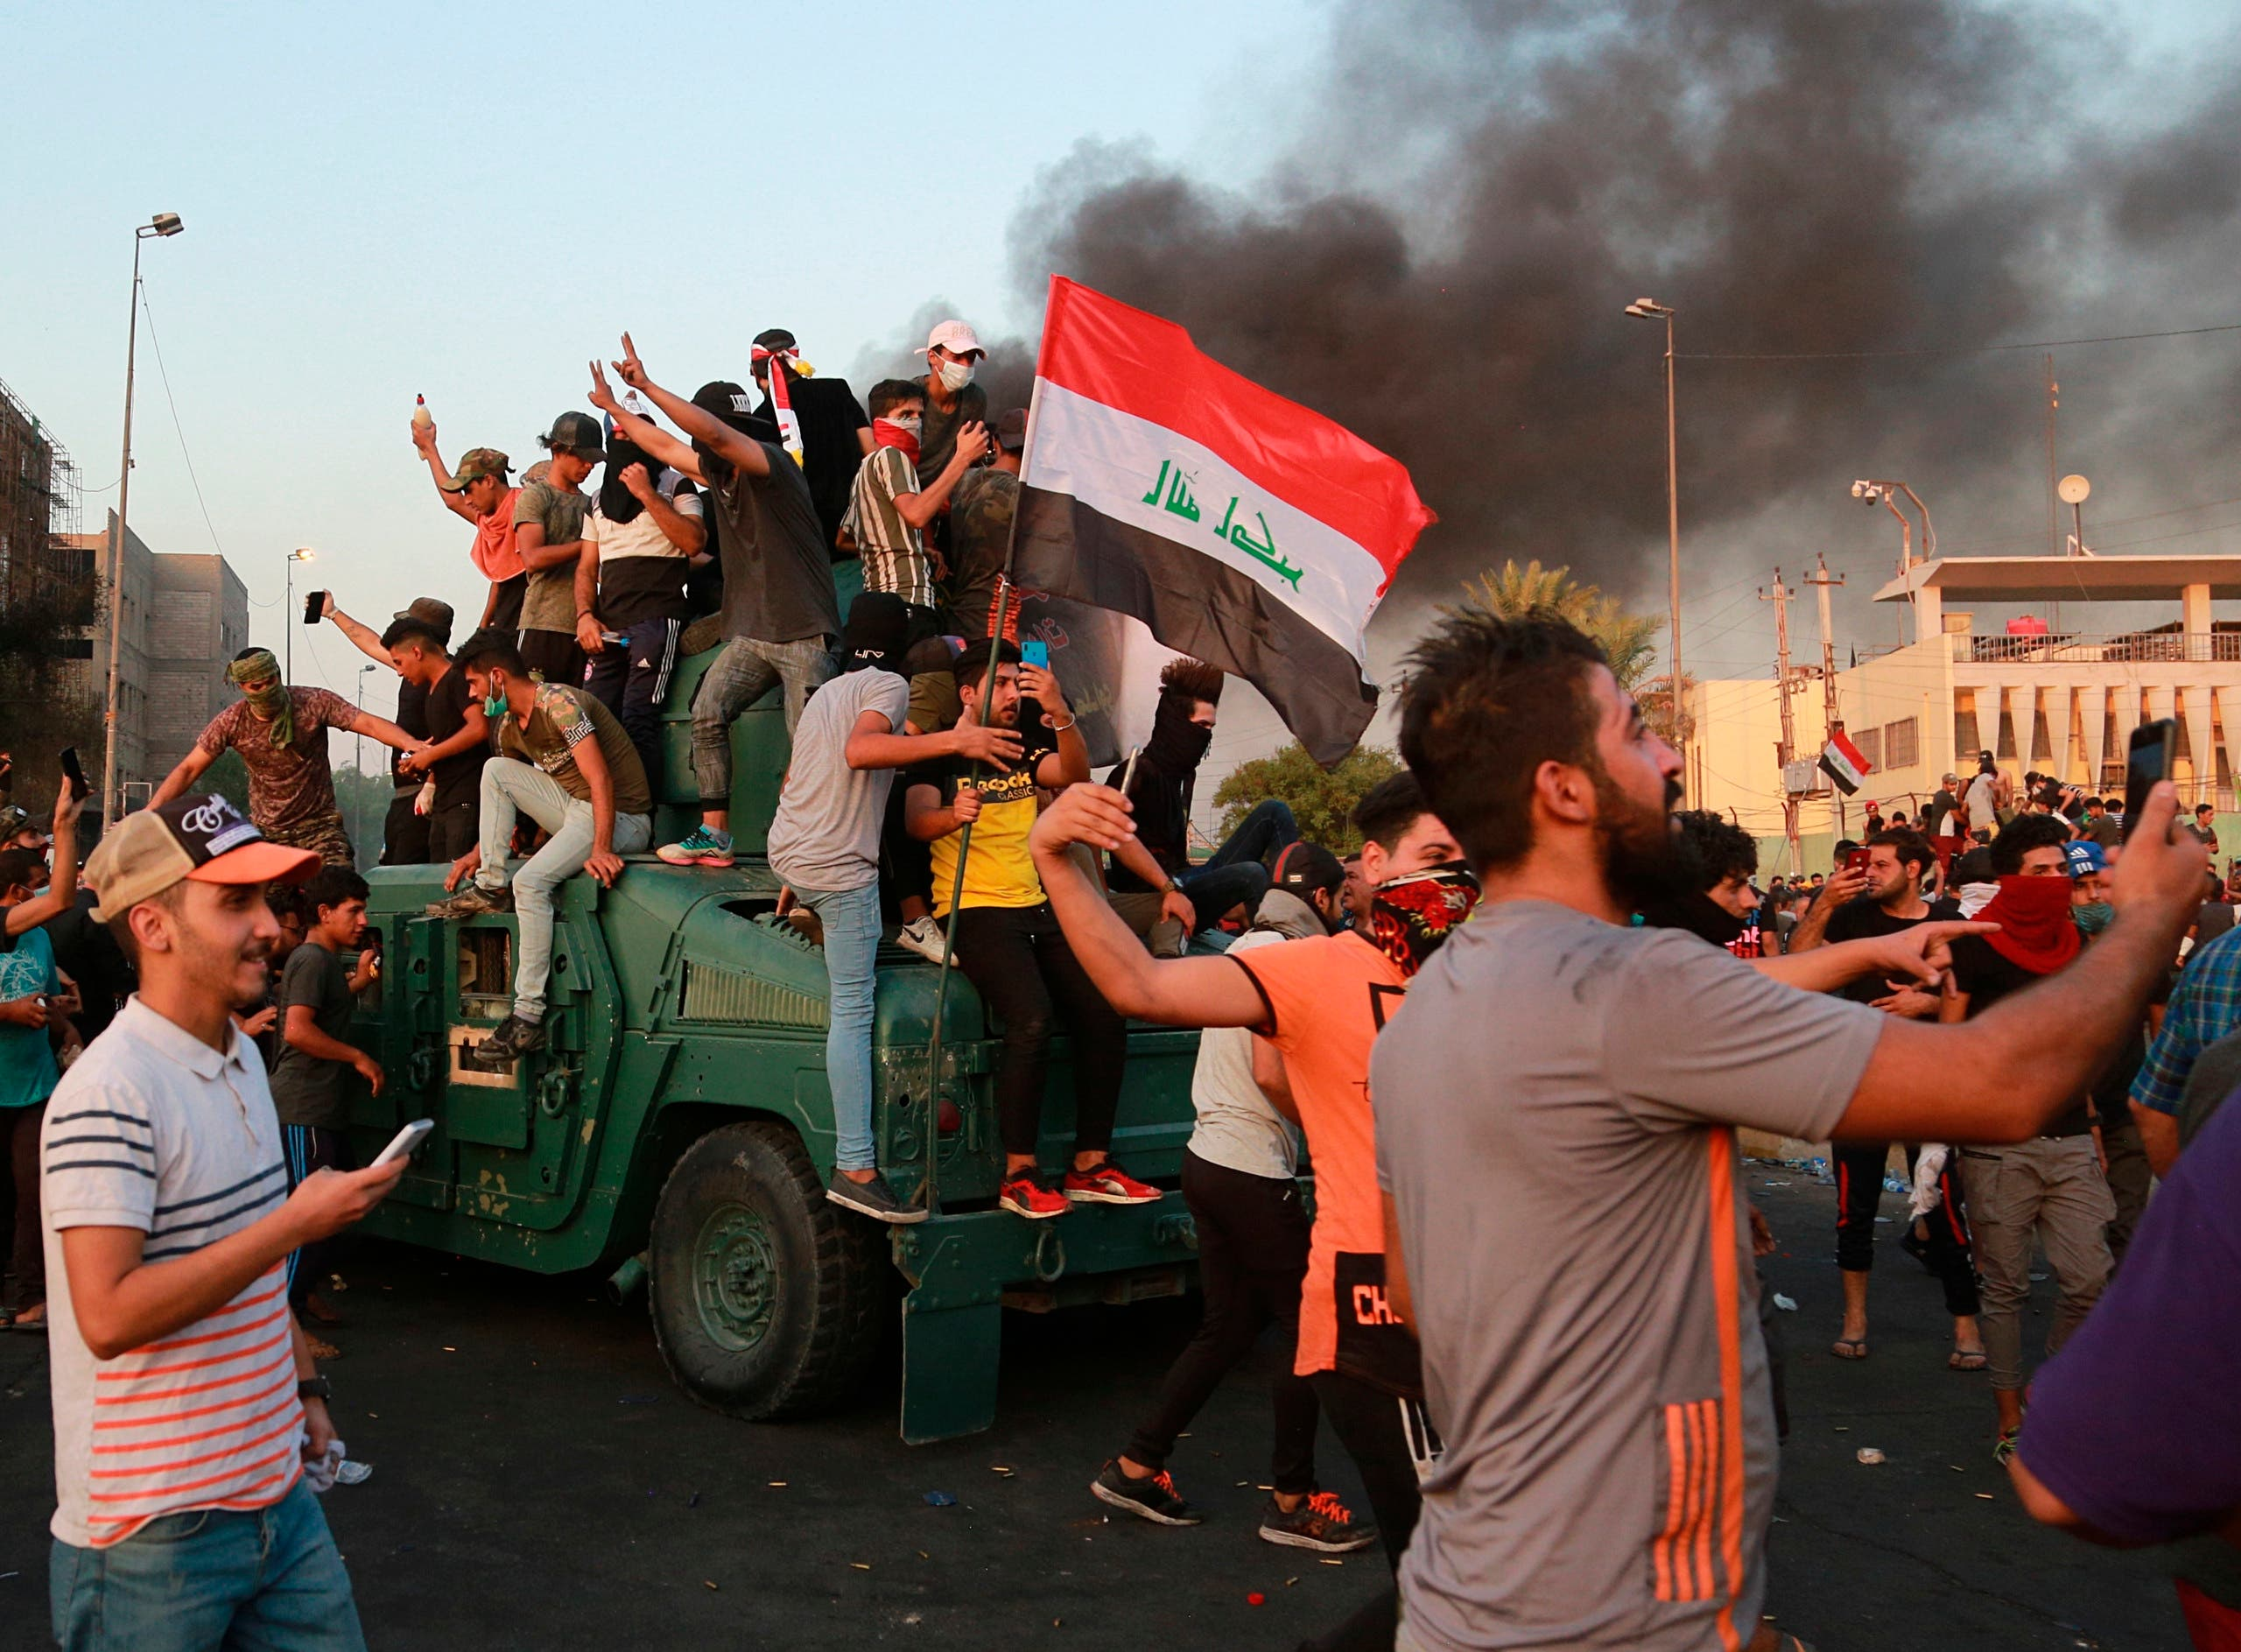 Anti-government protesters take over an armored vehicle before they burn it during a demonstration in Baghdad, Iraq, on Oct. 3, 2019. (AP)